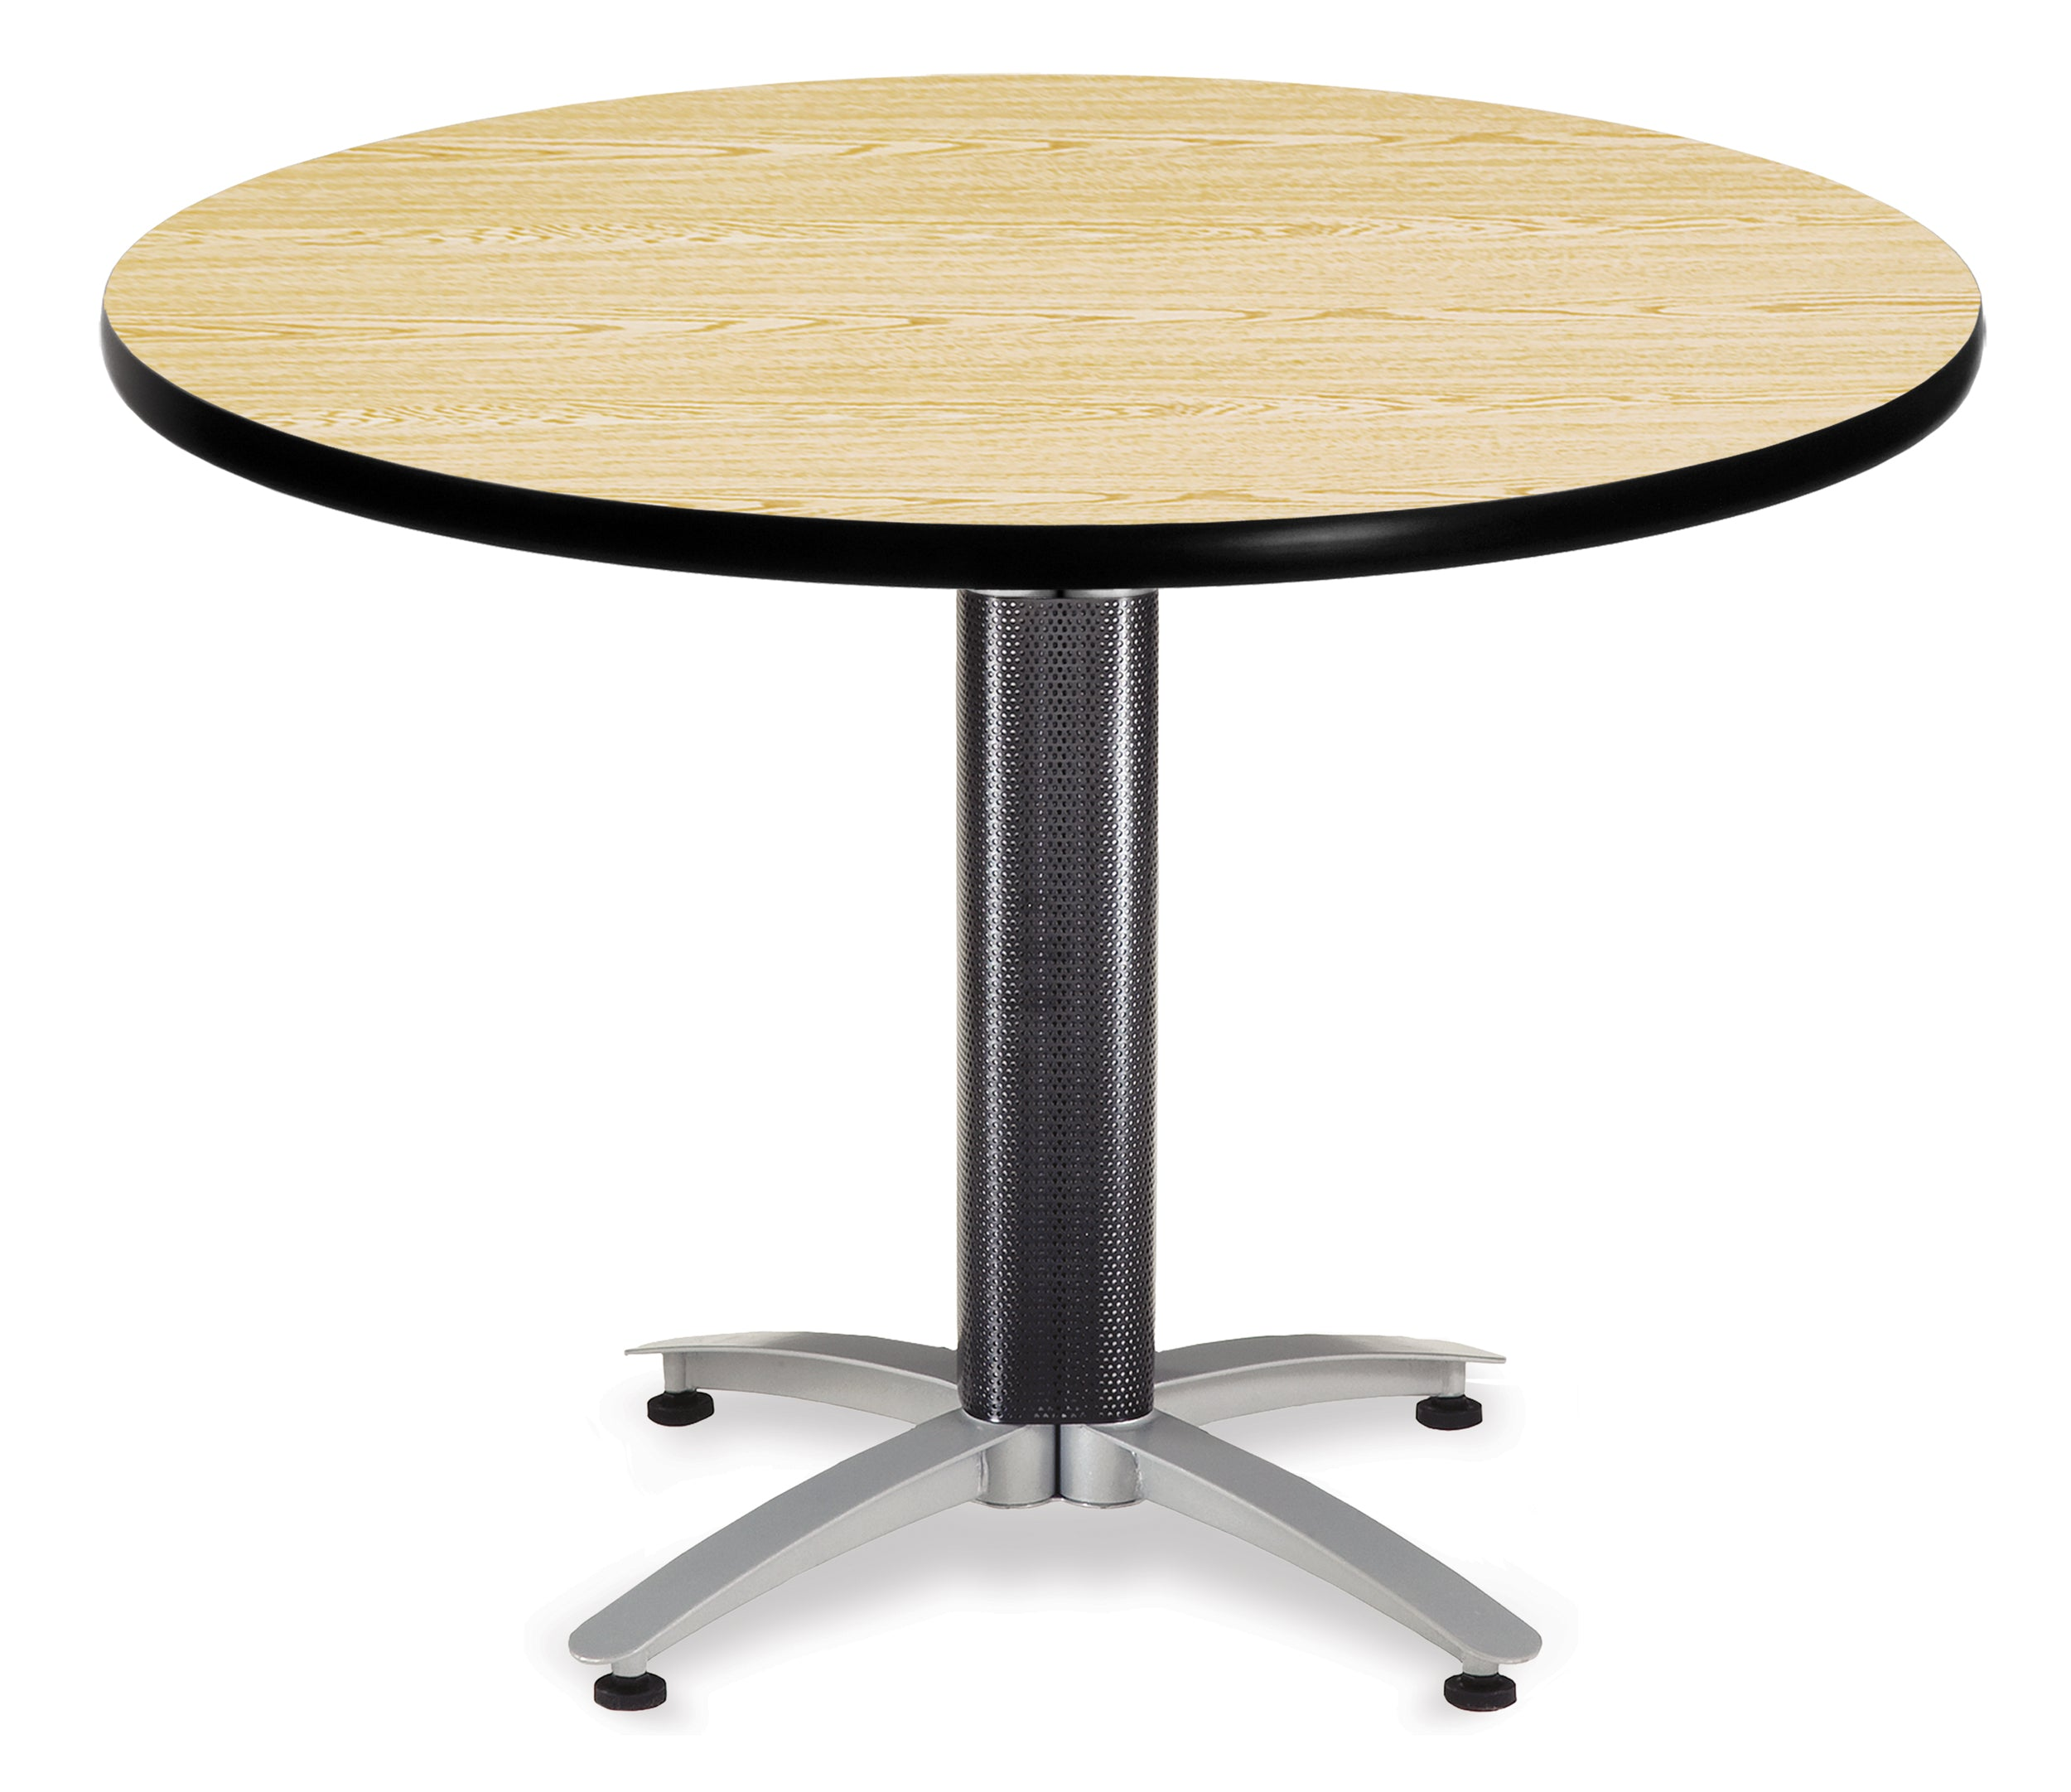 Ofminc Model MT42RD 42 Inch Round Mesh Base Multi-Purpose Table